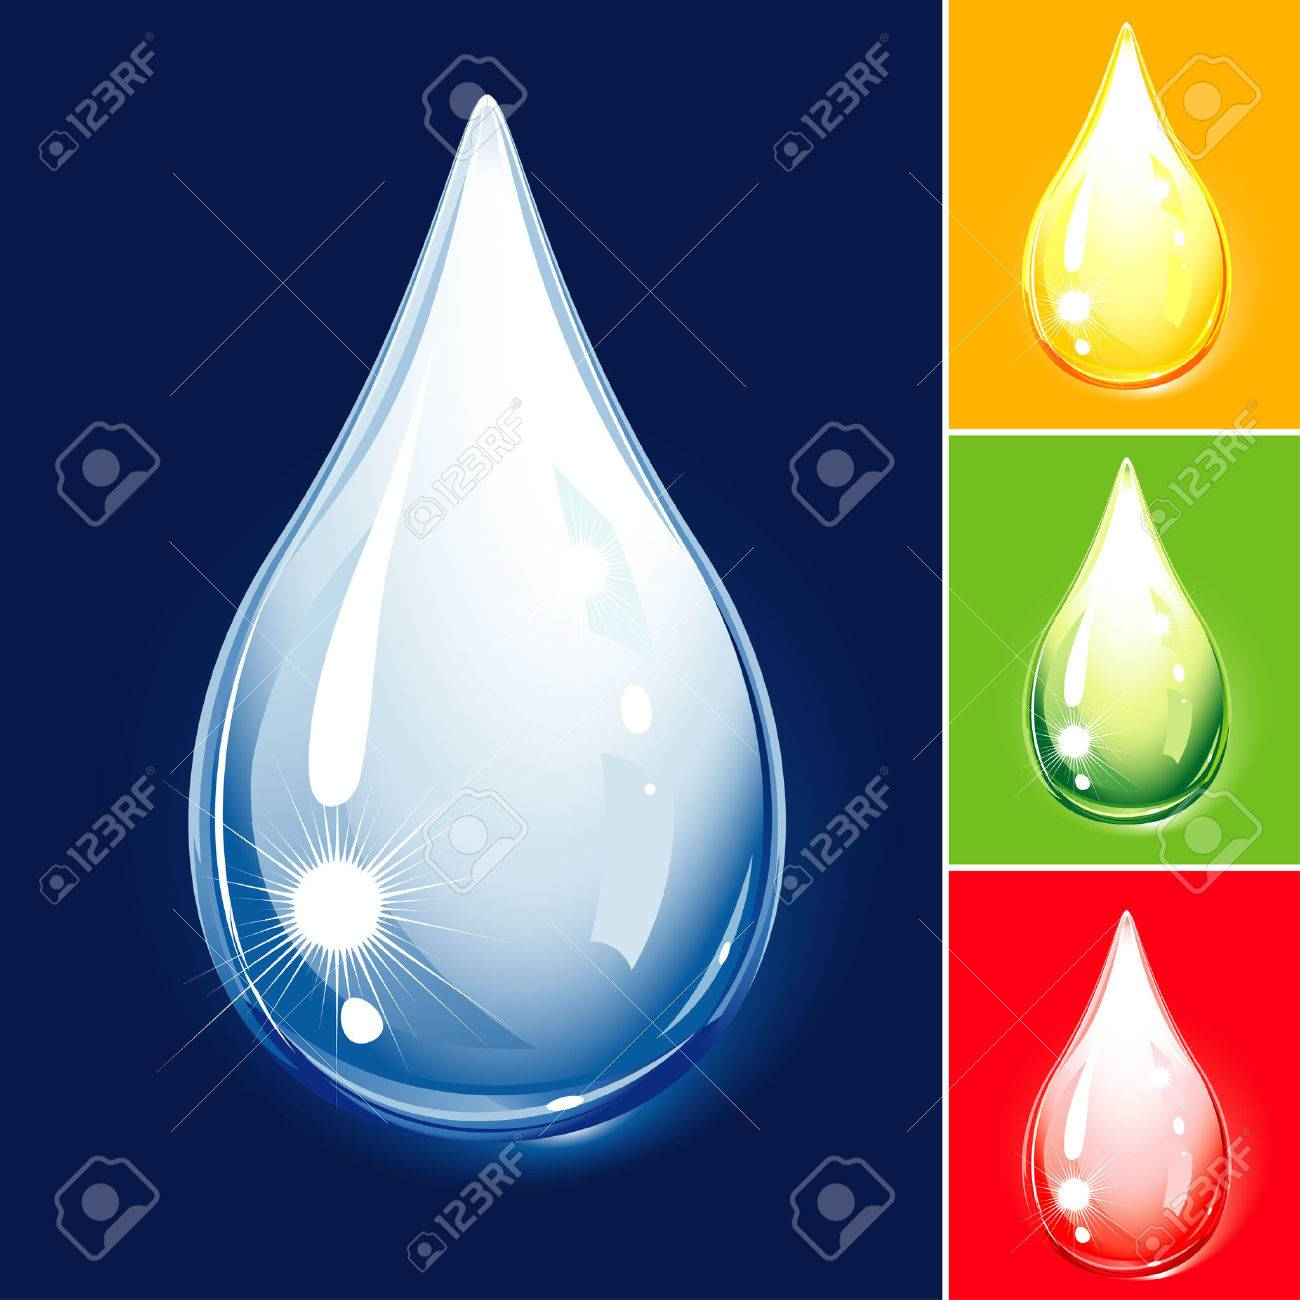 Colorful Drop Set - Water And Oil, editable vector illustration Stock Vector - 4770165